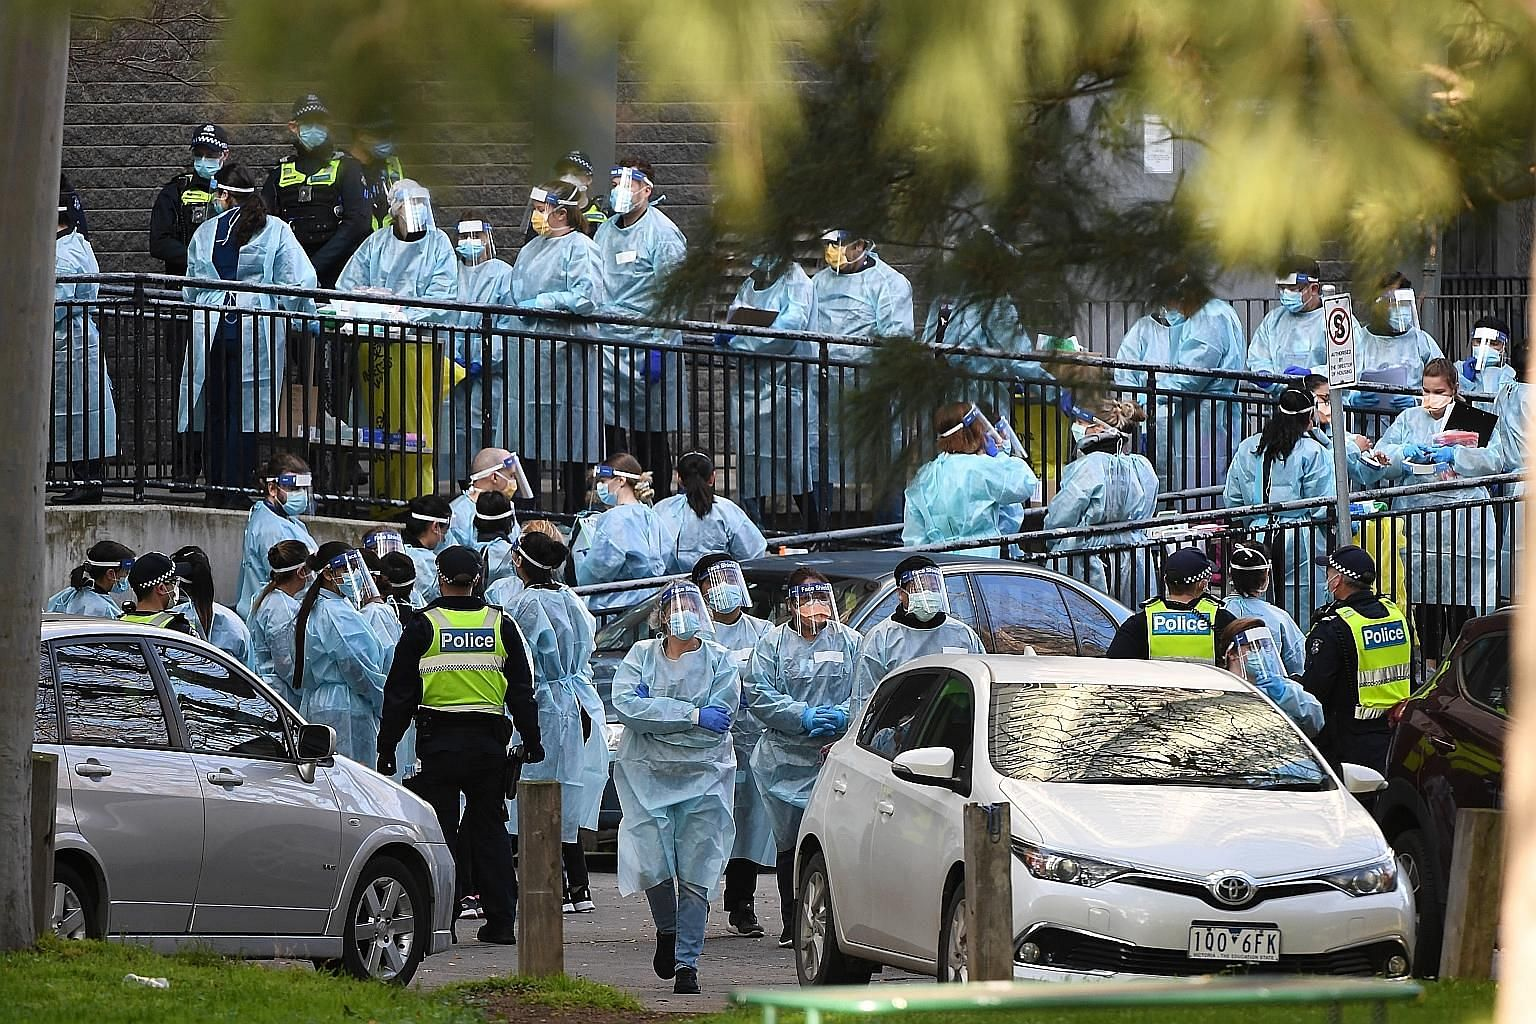 Above: Healthcare workers preparing to enter a public housing tower in North Melbourne yesterday. About 3,000 residents of such housing blocks in the city have been barred from leaving their flats. Far left: A support worker comforting a young child